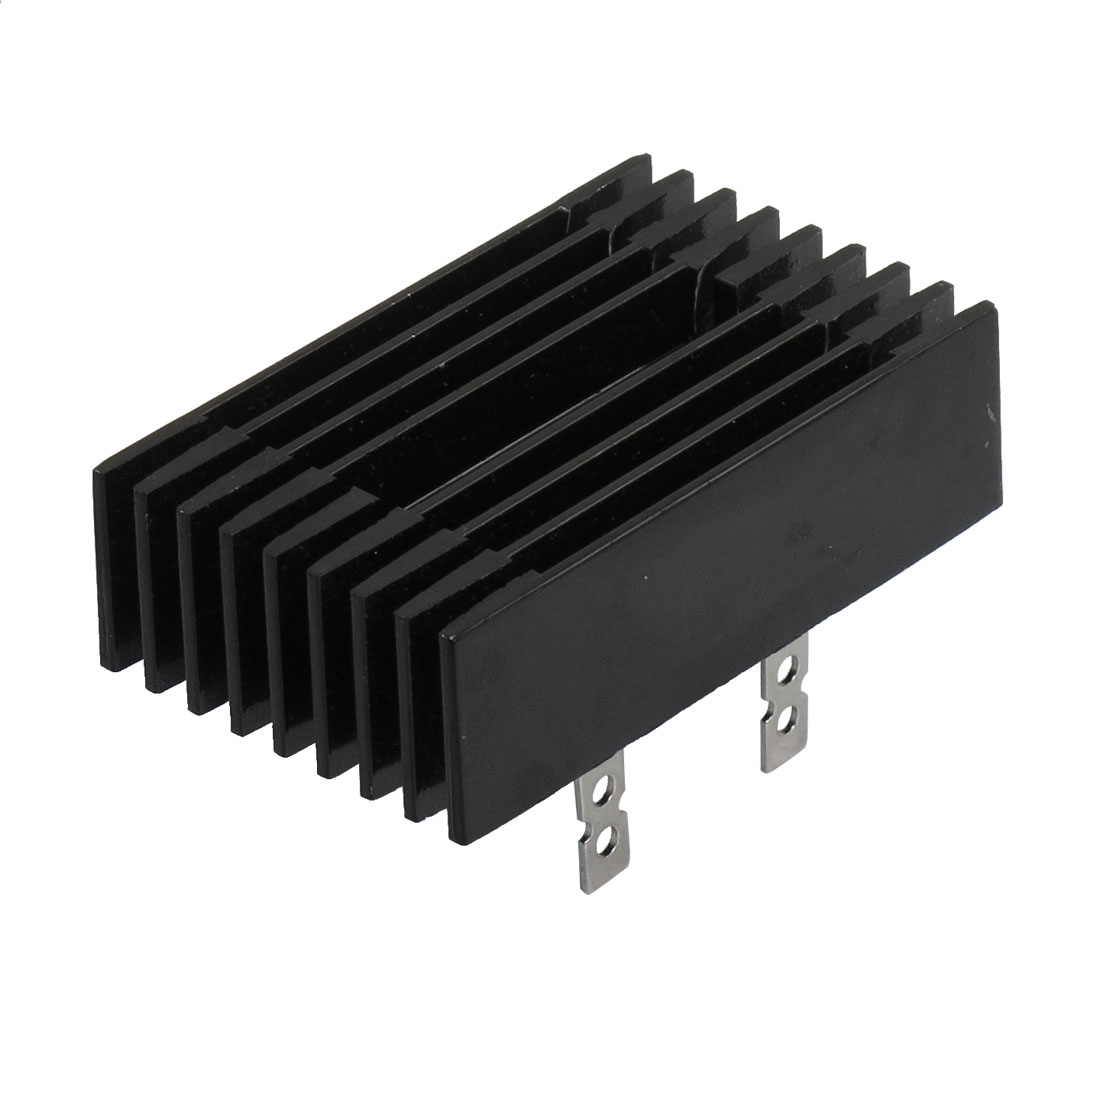 QL Type 4 Pins 3 Phase Diode Heatsink Bridge Rectifier 80A 1000V